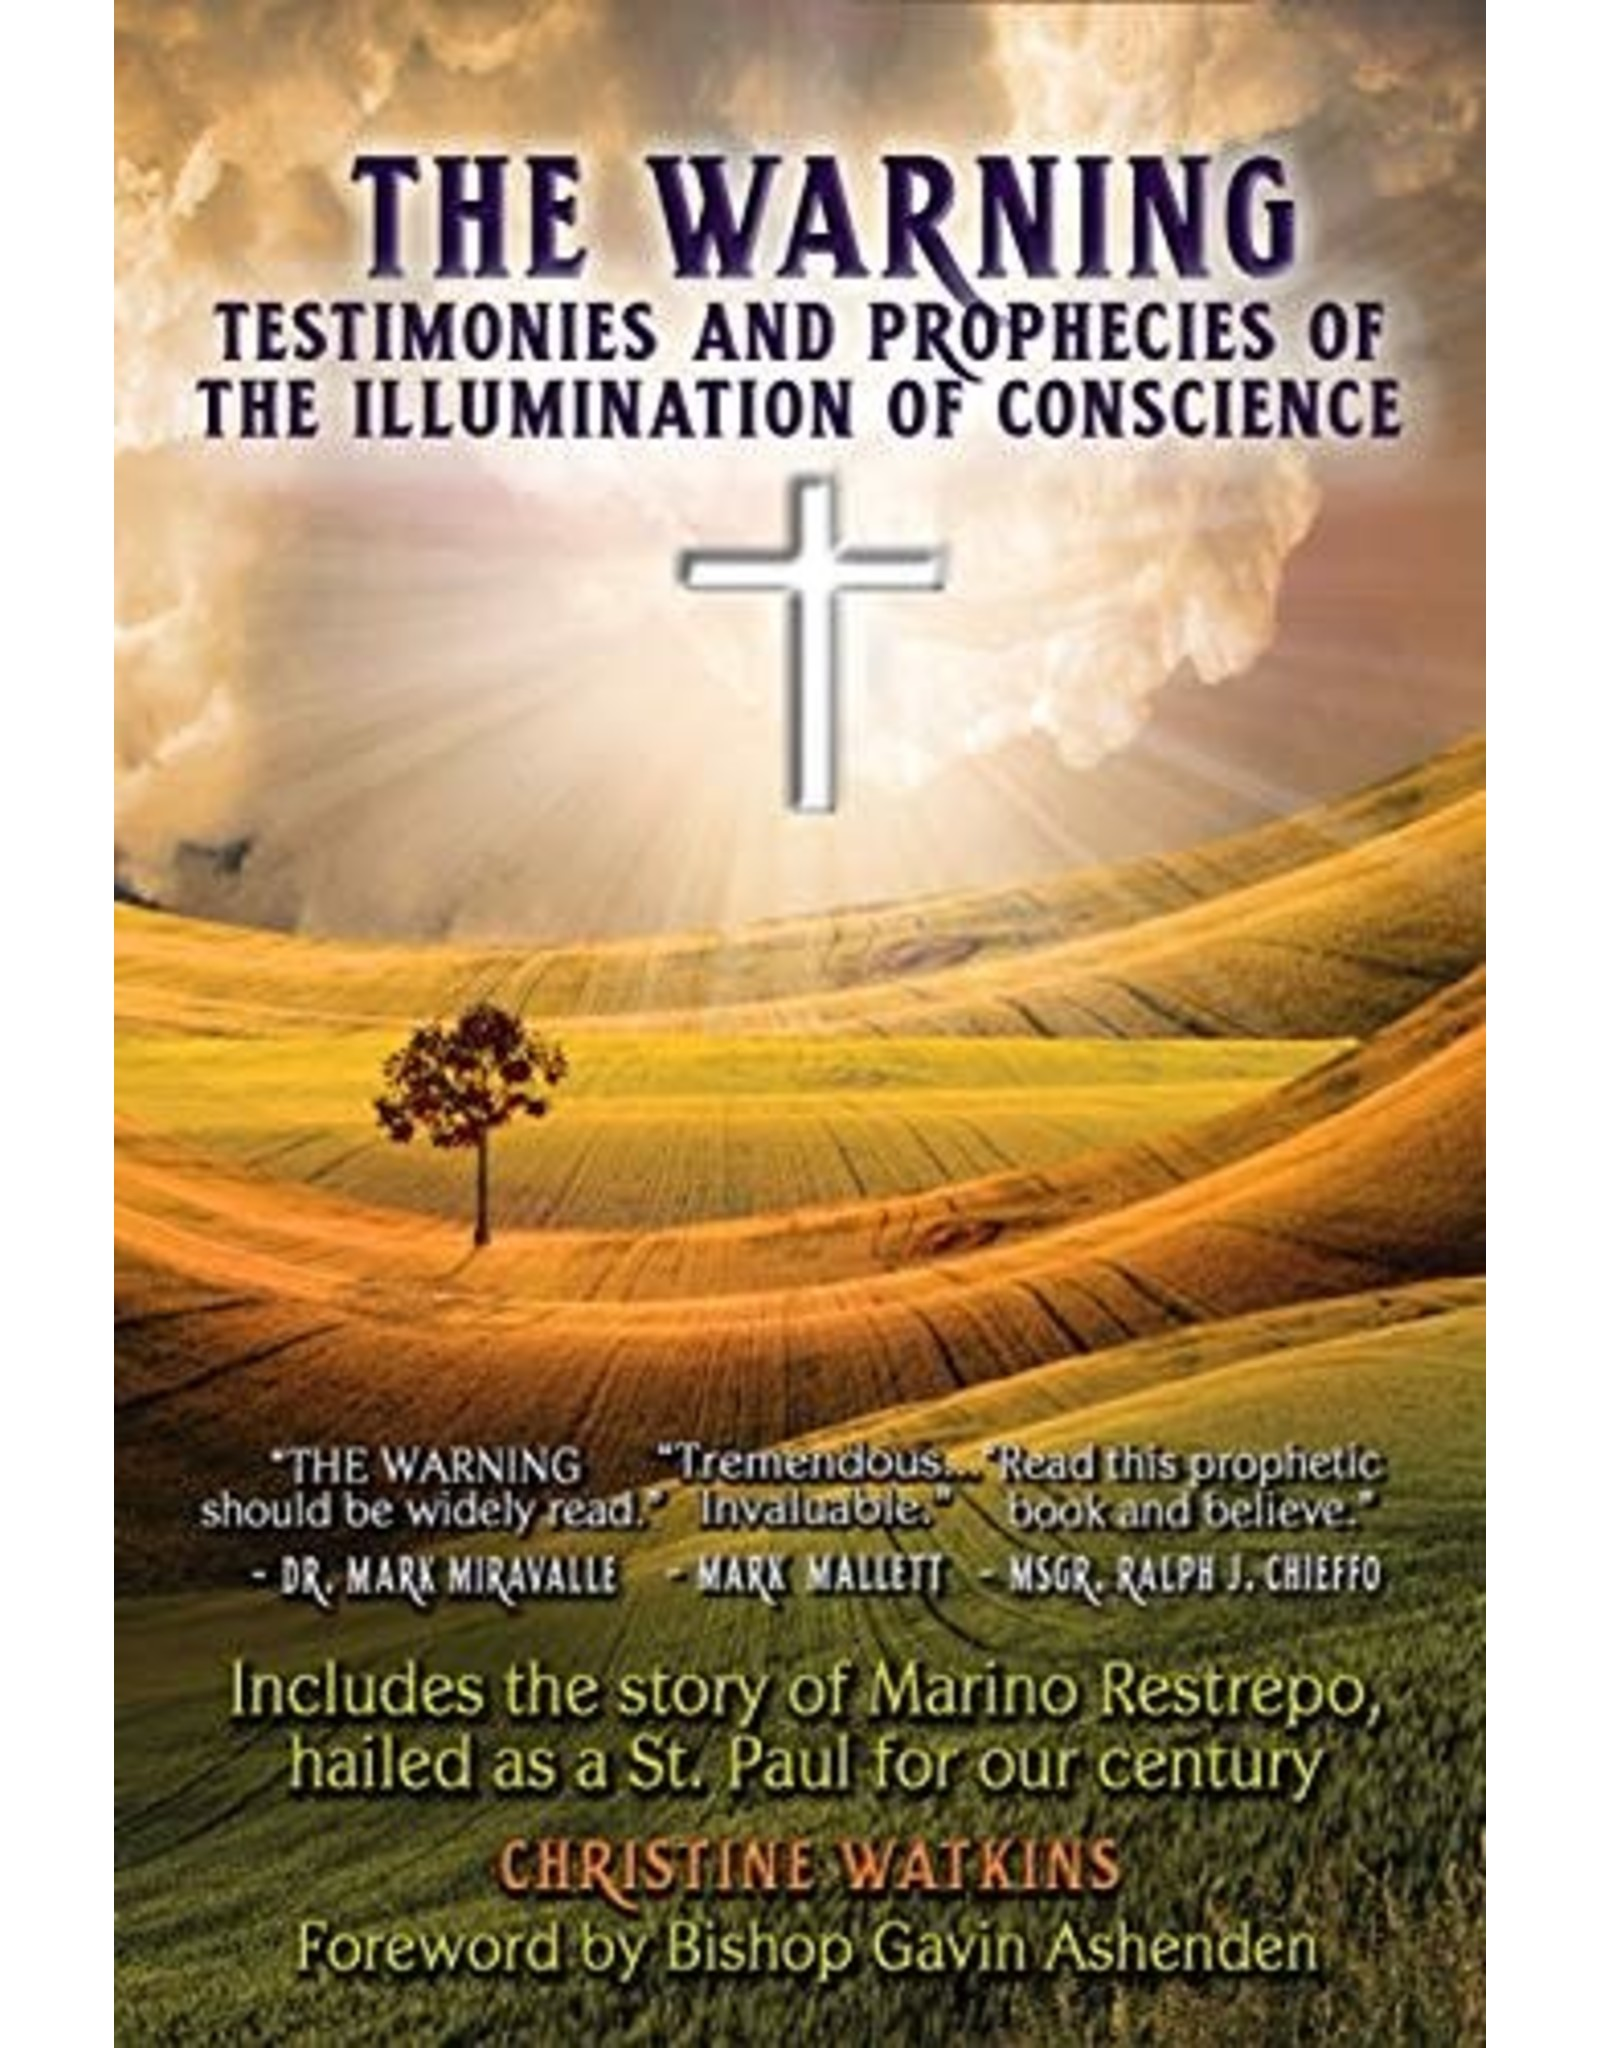 The Warning: Testimonies & Prophecies of the Illumination of Conscience